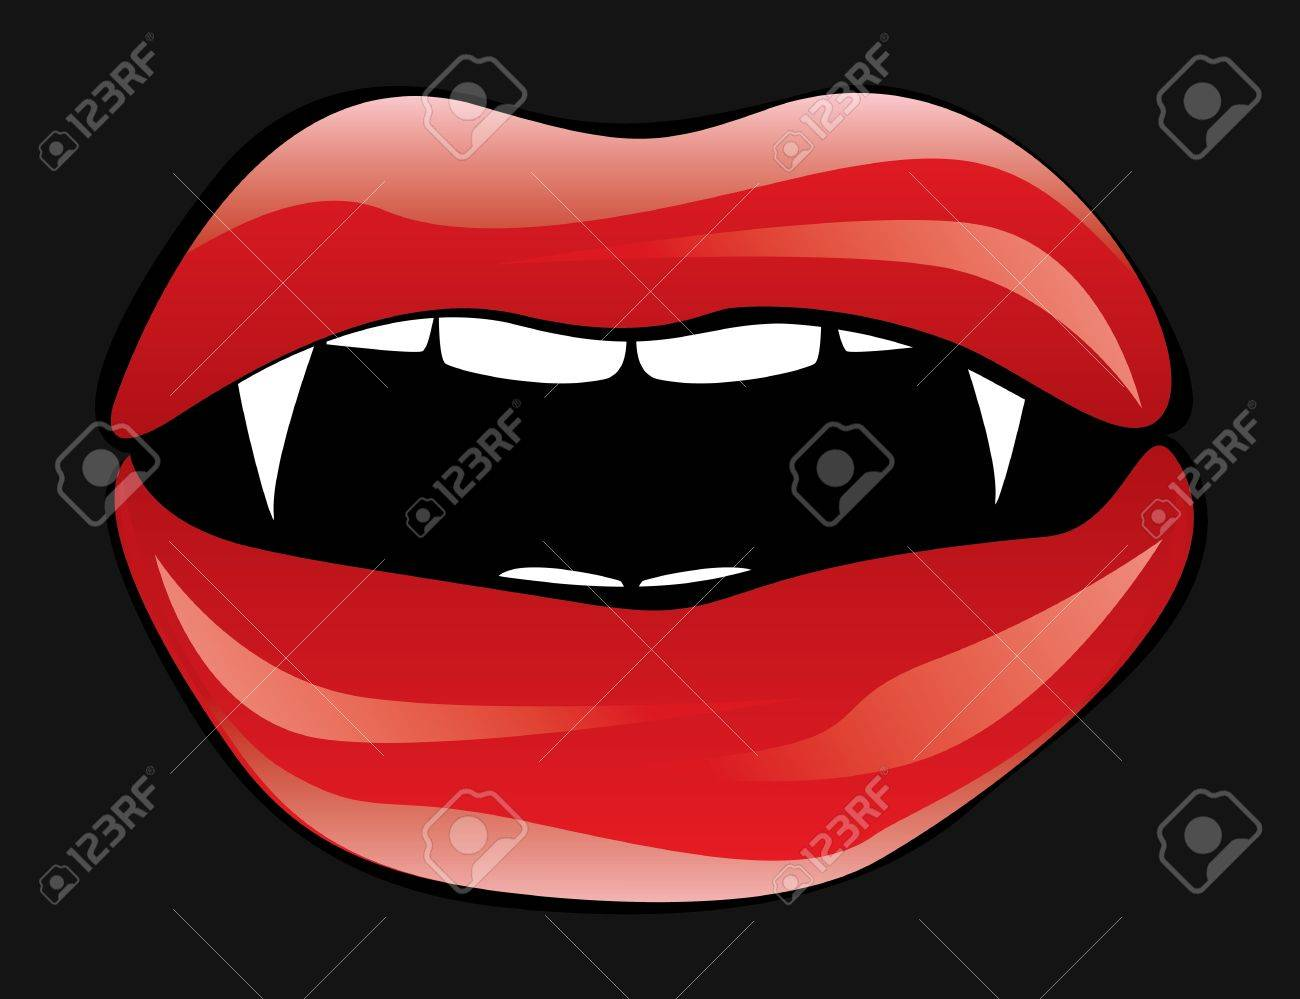 Illustration of red vampire lips on dark background. Stock Vector - 15802254